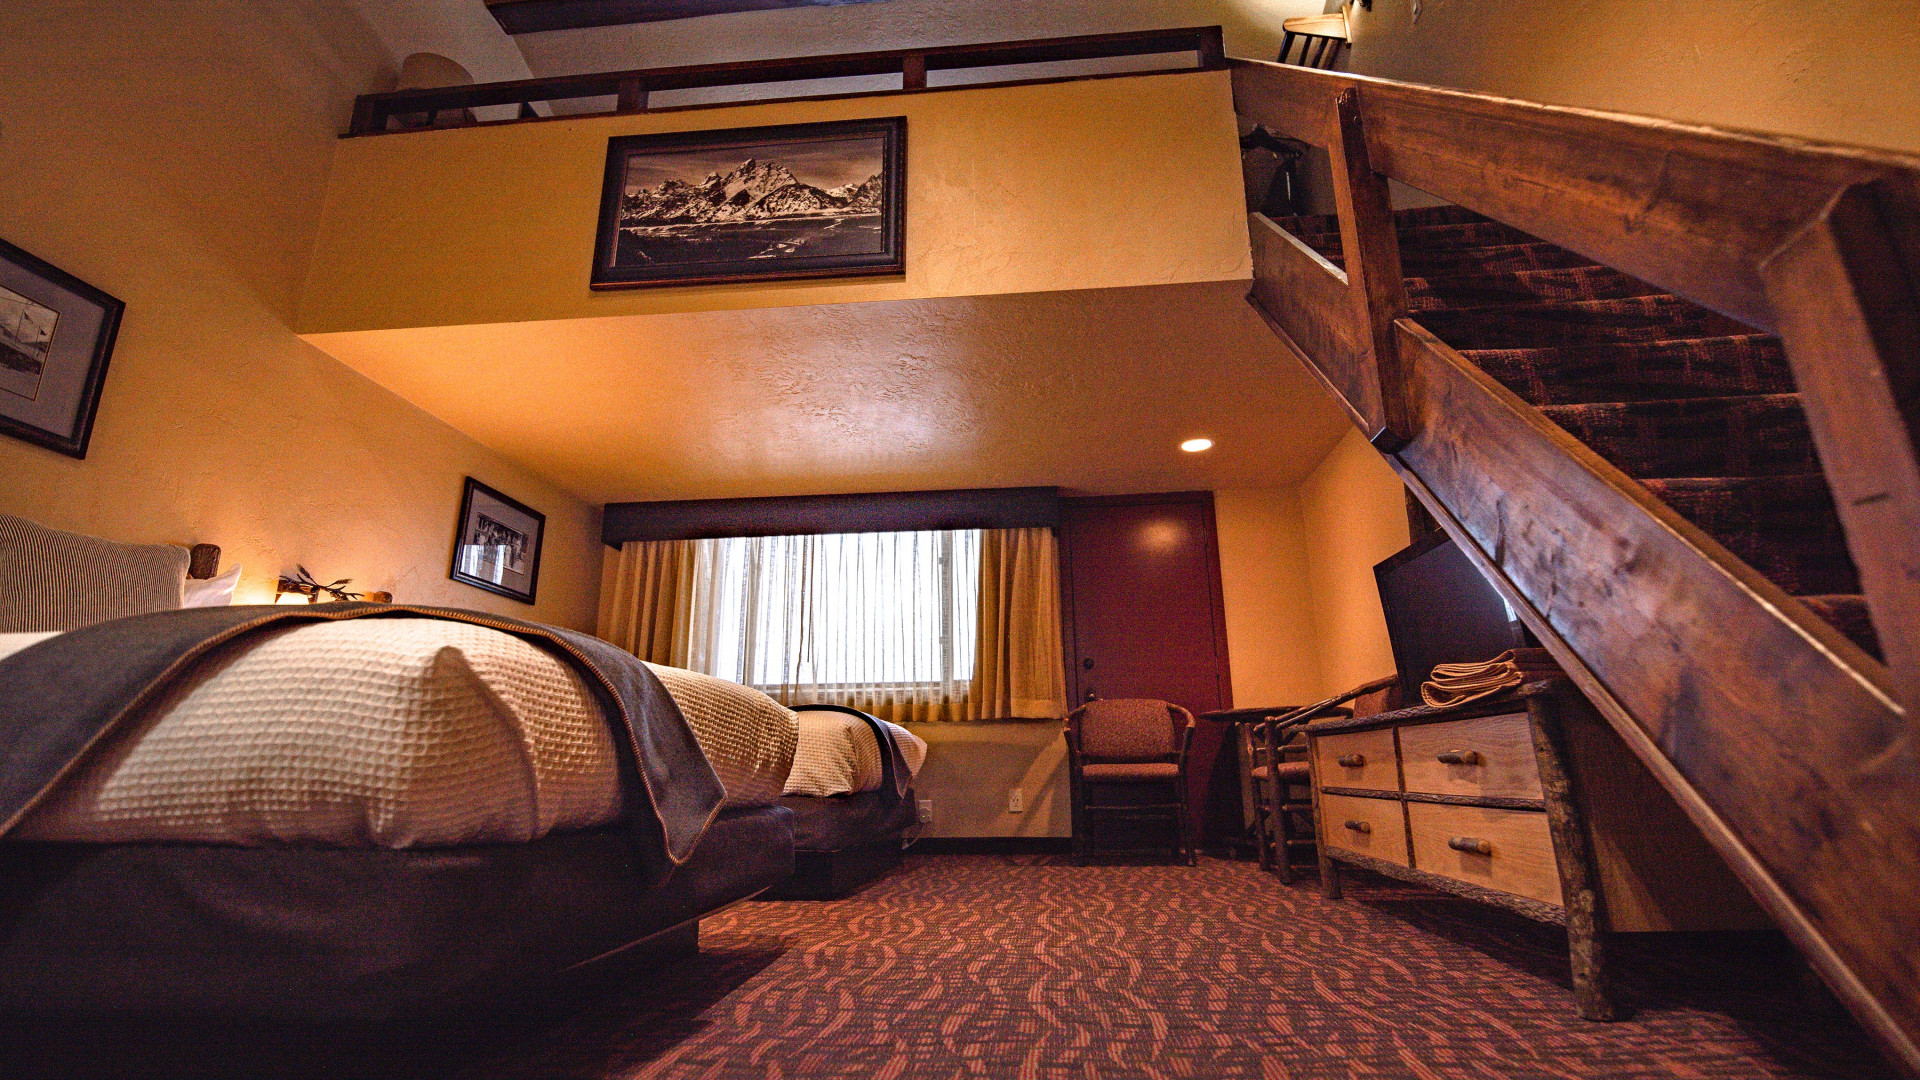 Find the perfect place to stay in Jackson.